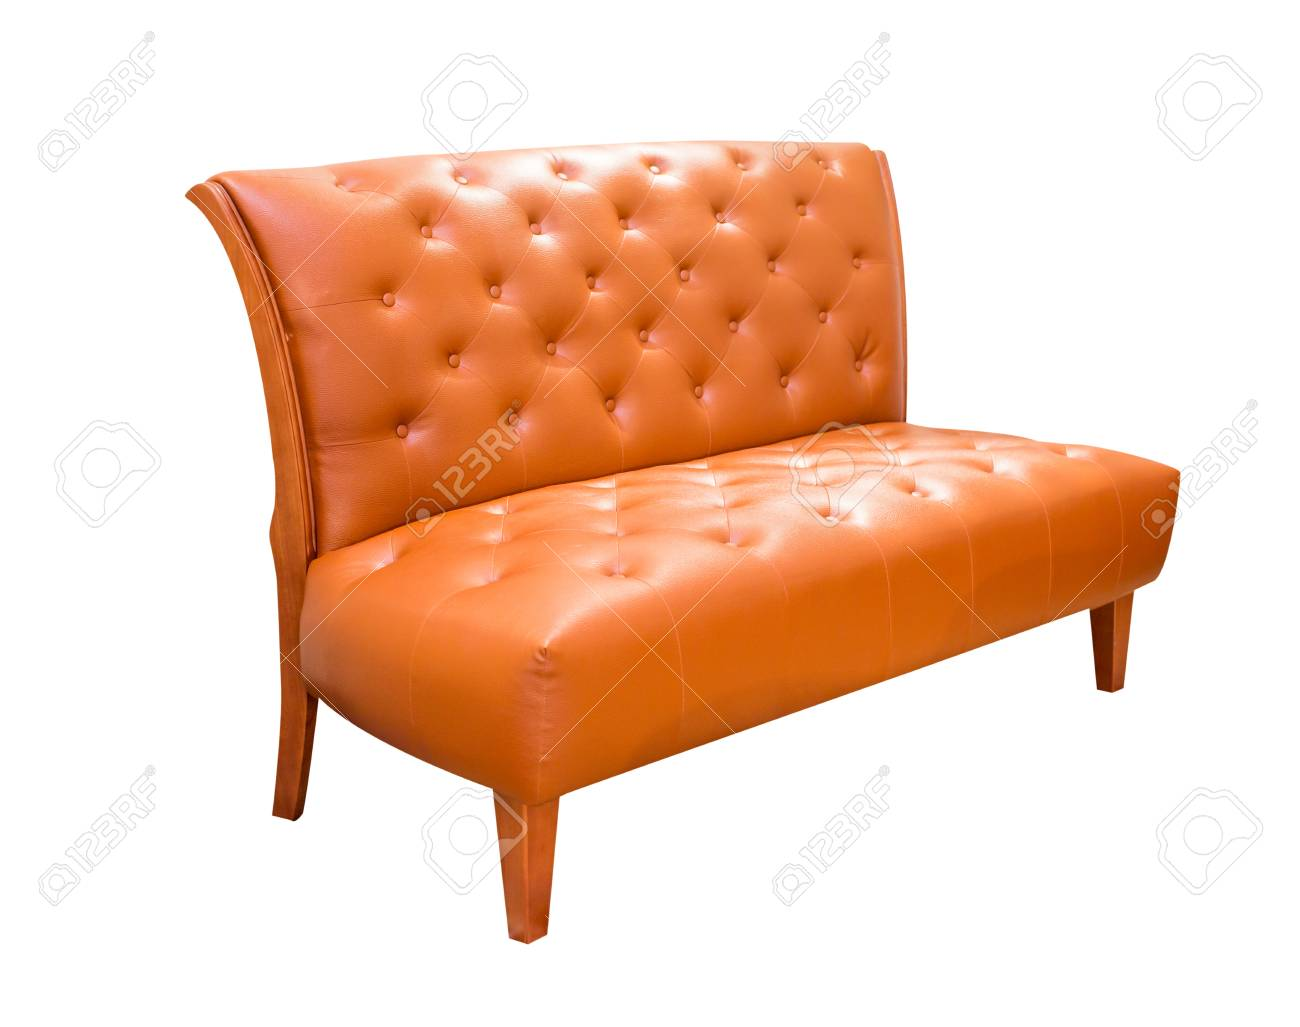 Vintage Ledersofa Stock Photo